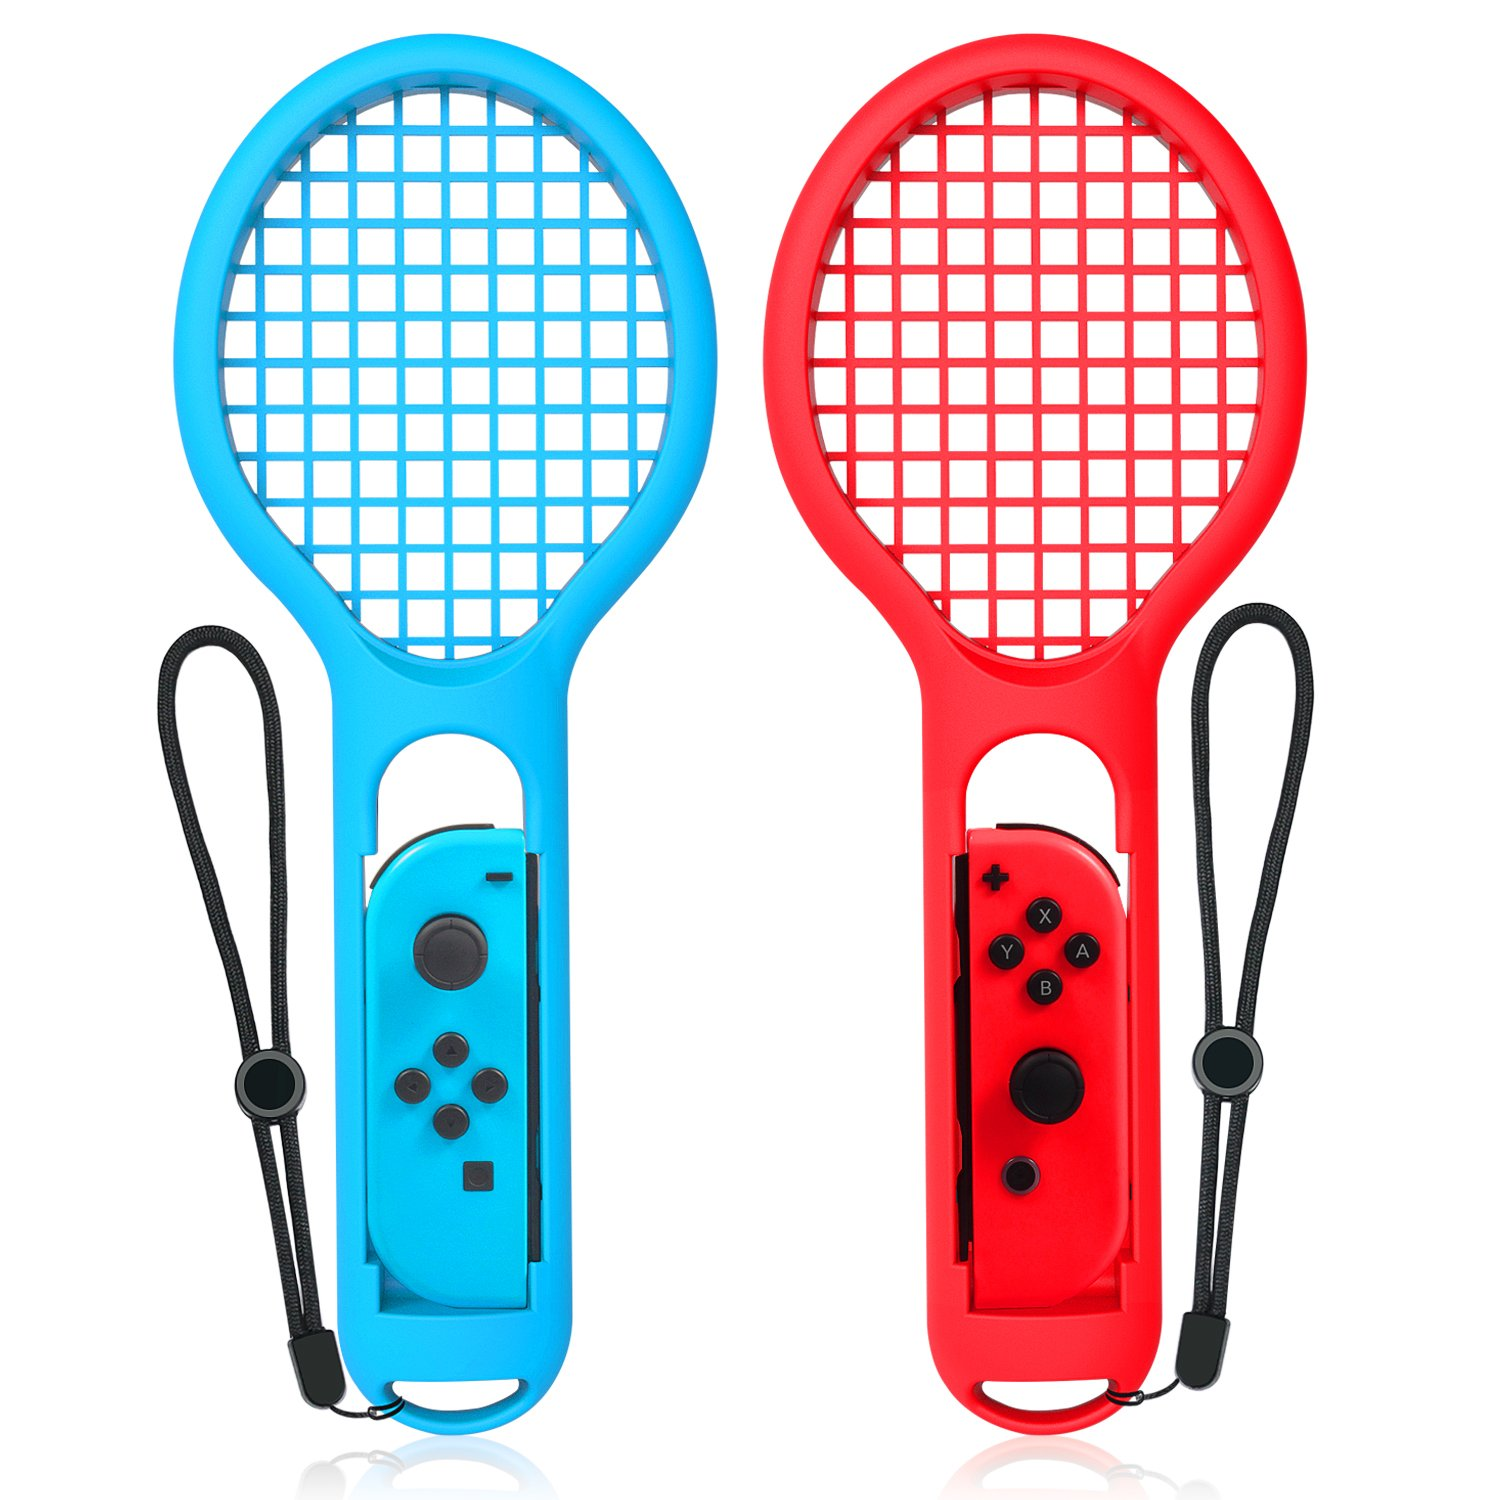 Tennis Racket for Nintendo Switch, Keten Twin Pack Tennis Racket for Joy-Con Controllers for Mario Tennis Aces Game, Grips for Switch Joy-Cons (1X Blue & 1X Red)